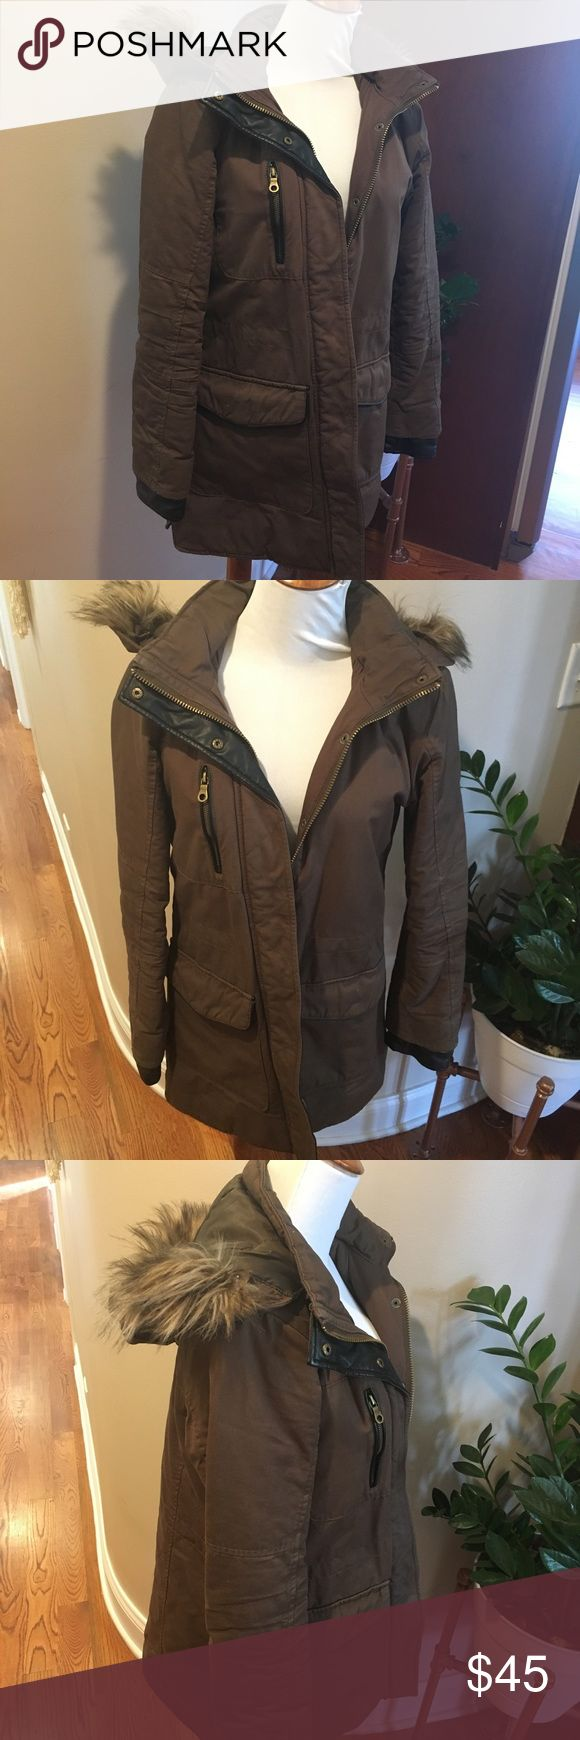 Faux Fur Hooded Coat The perfect winter coat, in very good, gently used condition. Originally purchased from Nordstrom. Color is more brown/olive than green as shown in stock photo with faux black leather trim. KIIND OF Jackets & Coats